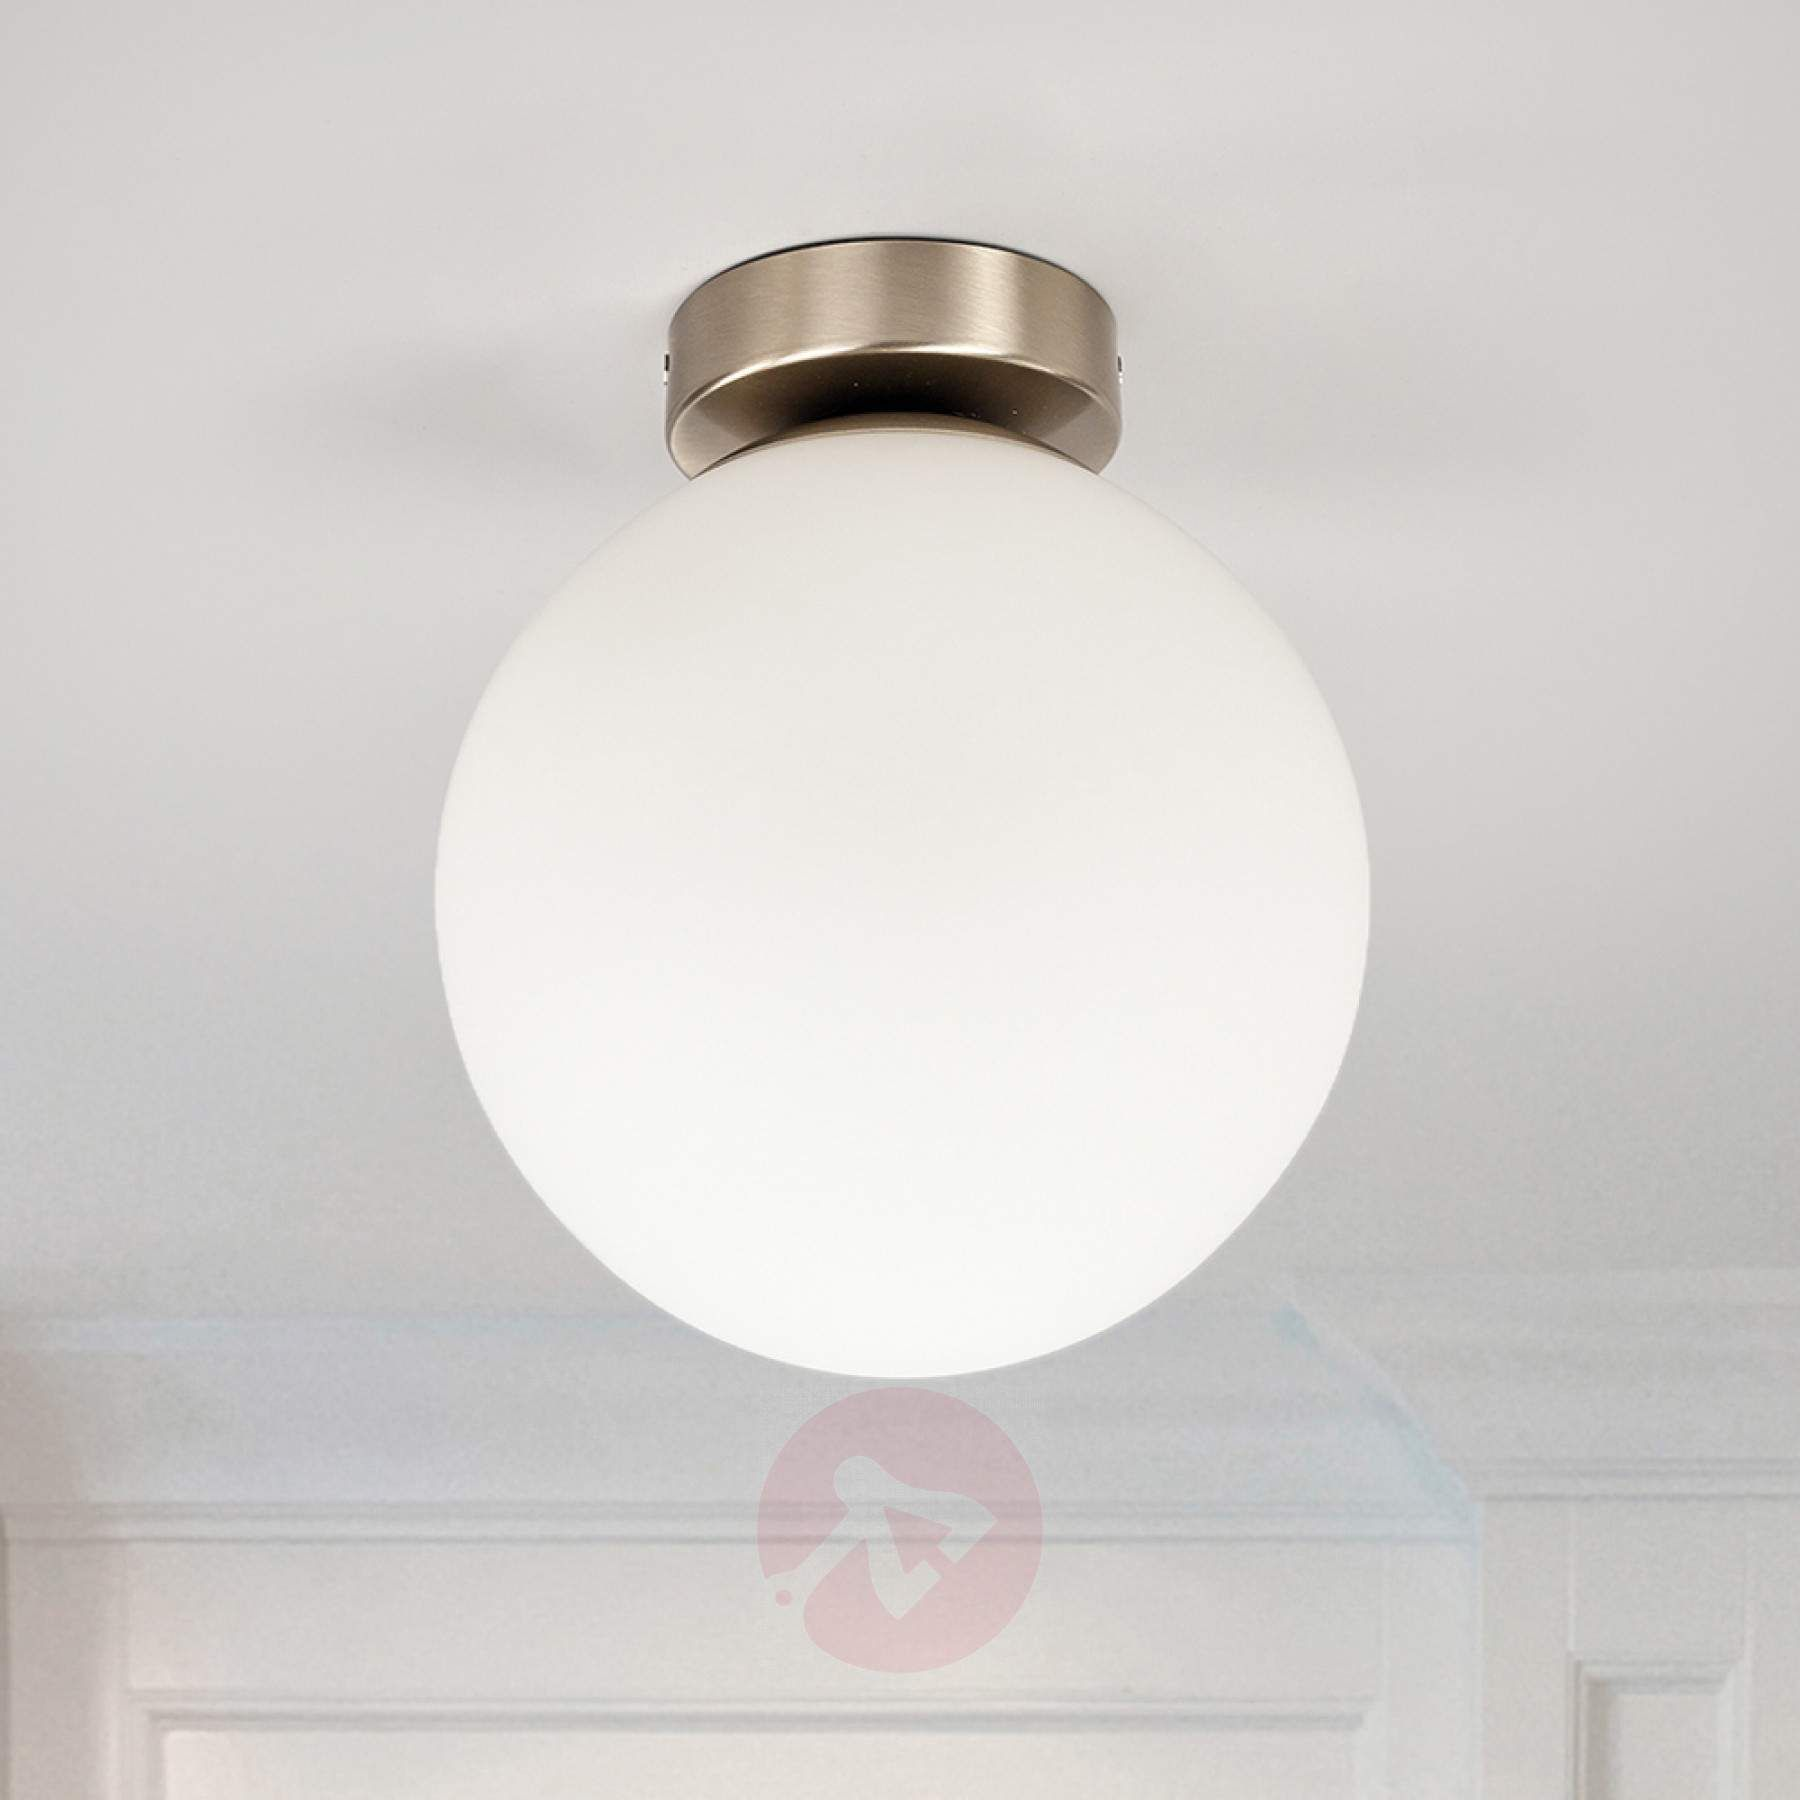 Round Bathroom Ceiling Light Lennie Taklampe Takbelysning Armatur